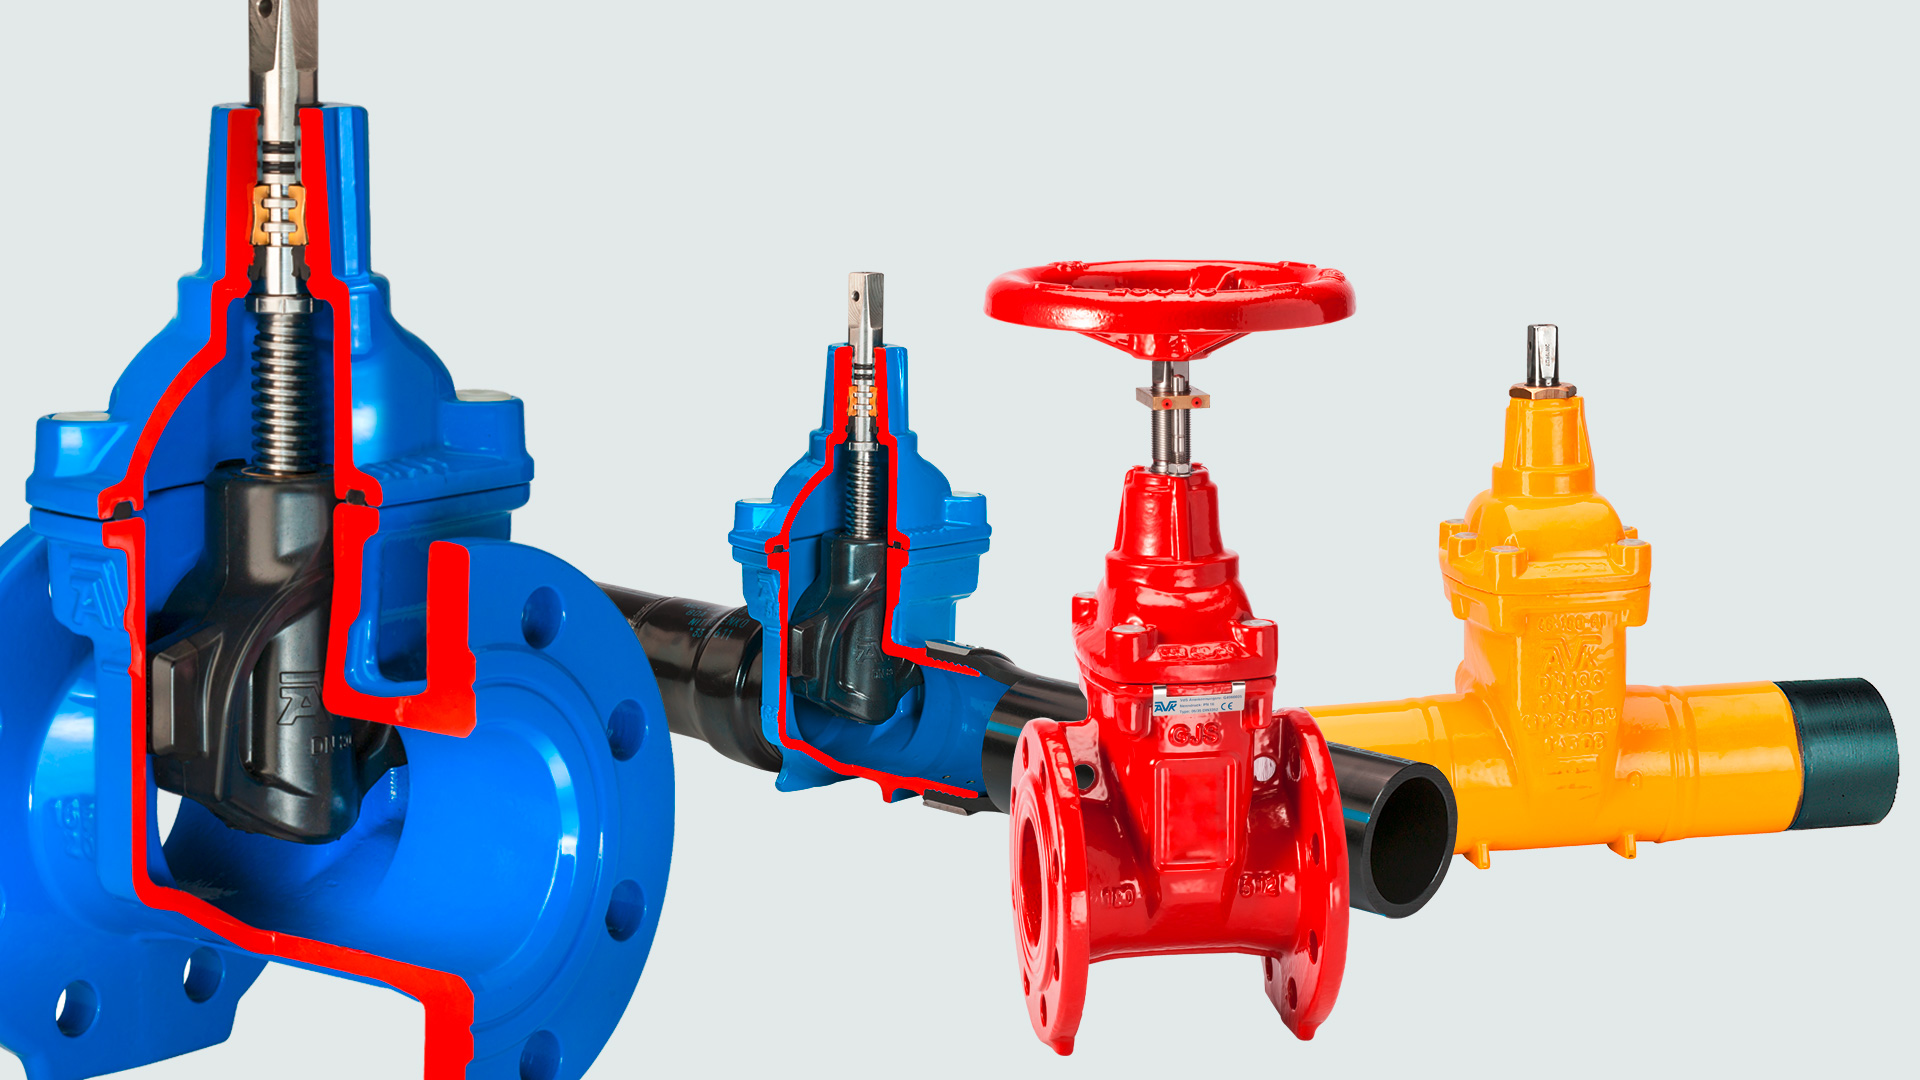 AVK gate valves with cutaway and visible wedge